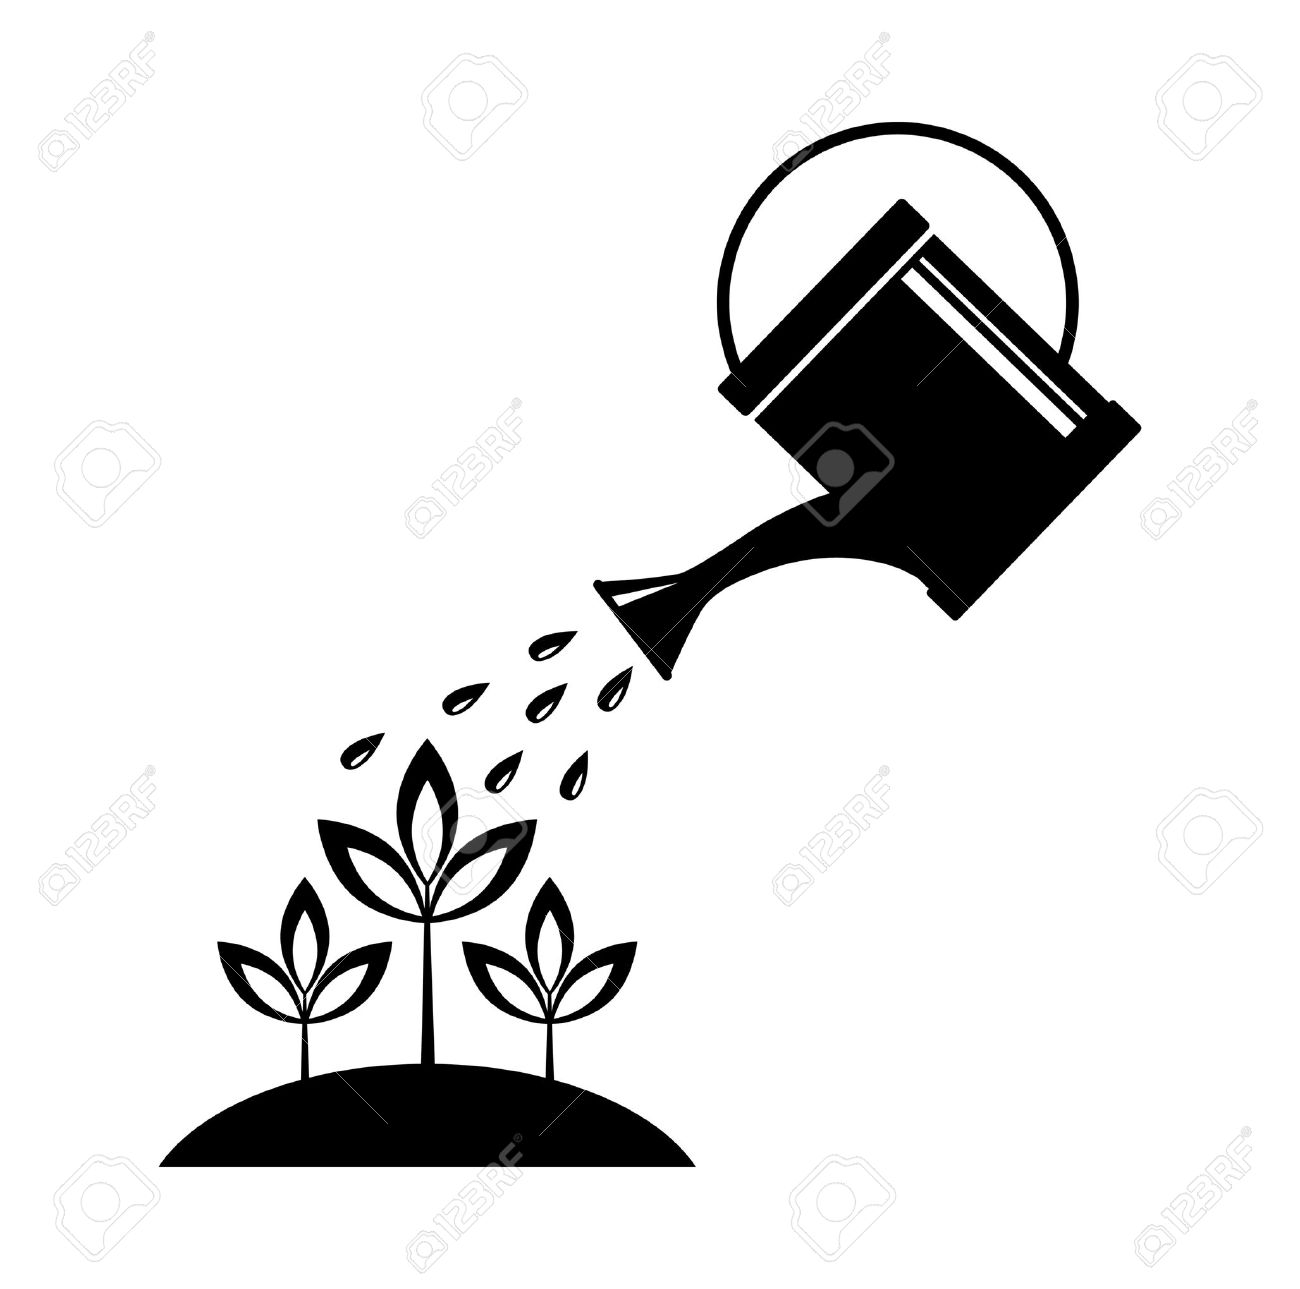 hight resolution of 1300x1289 16666854 watering can stock vector plant jpg pixels